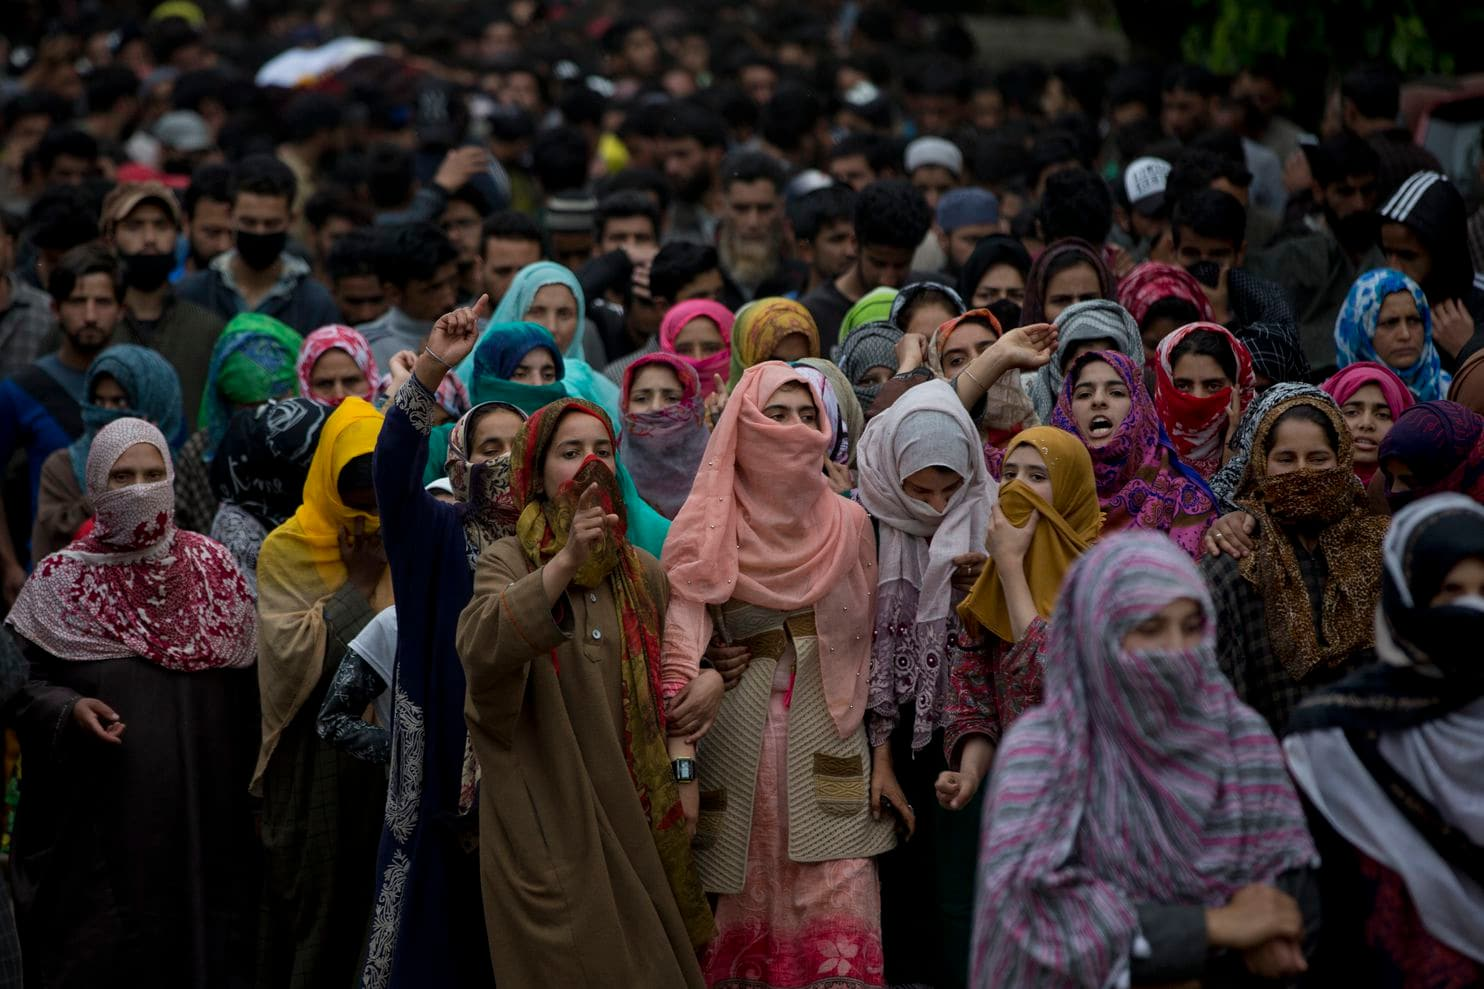 Kashmiri village women shout pro freedom slogans as they participate in funeral procession of top rebel commander Naseer Pandith, in Pulwama, south of Srinagar, Indian controlled Kashmir, Thursday, May 16, 2019. (Dar Yasin/Associated Press)